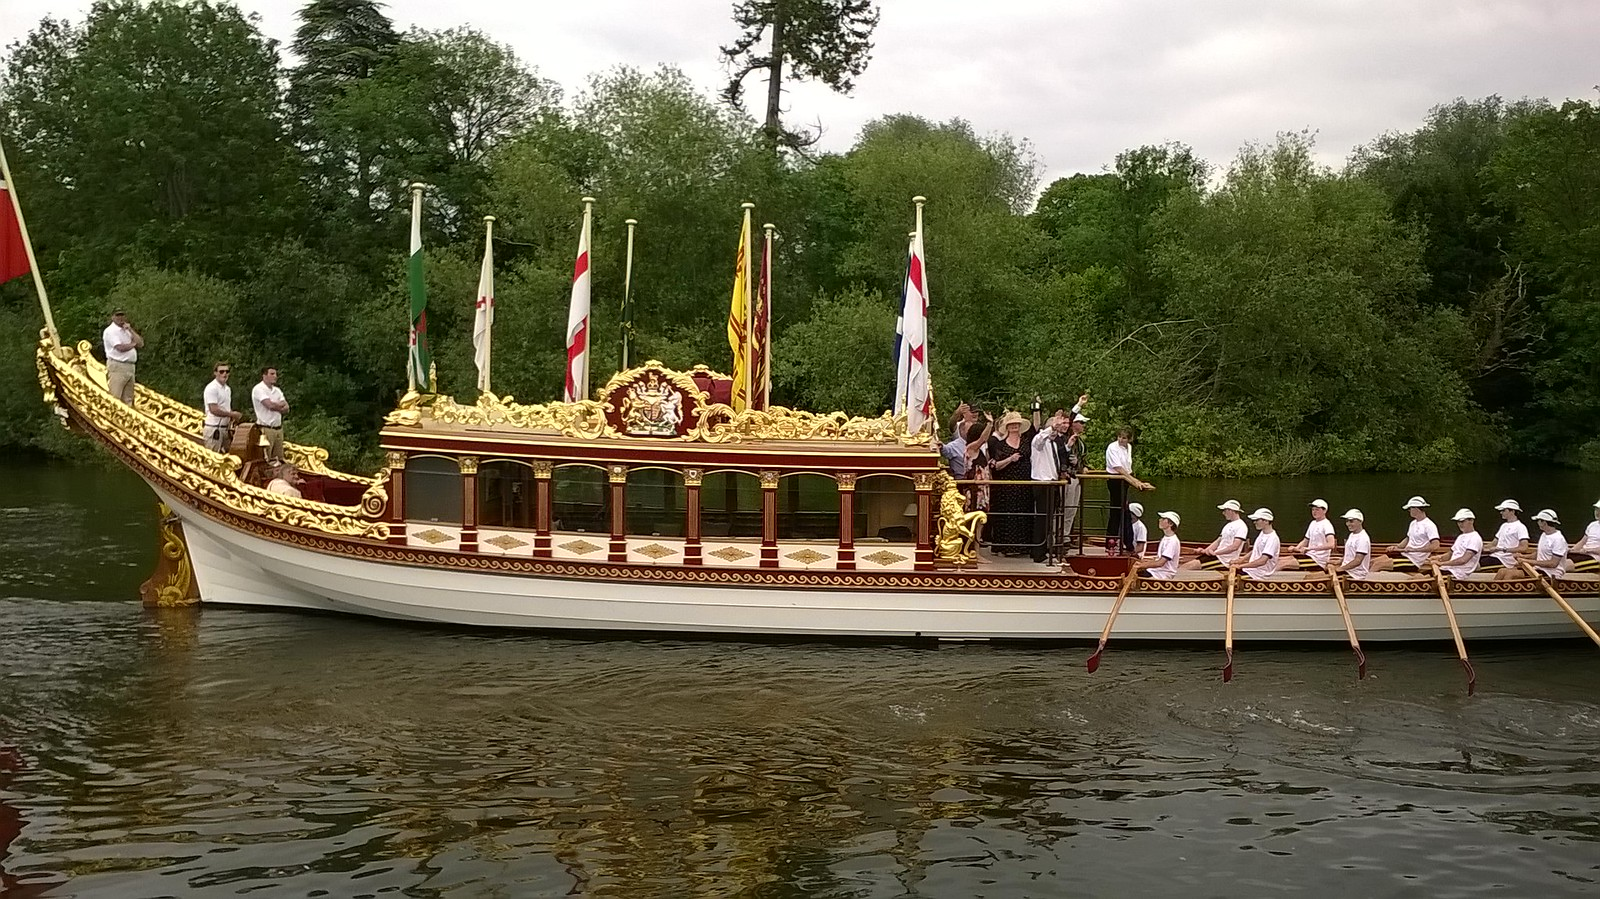 Gloriana! at Runnymede